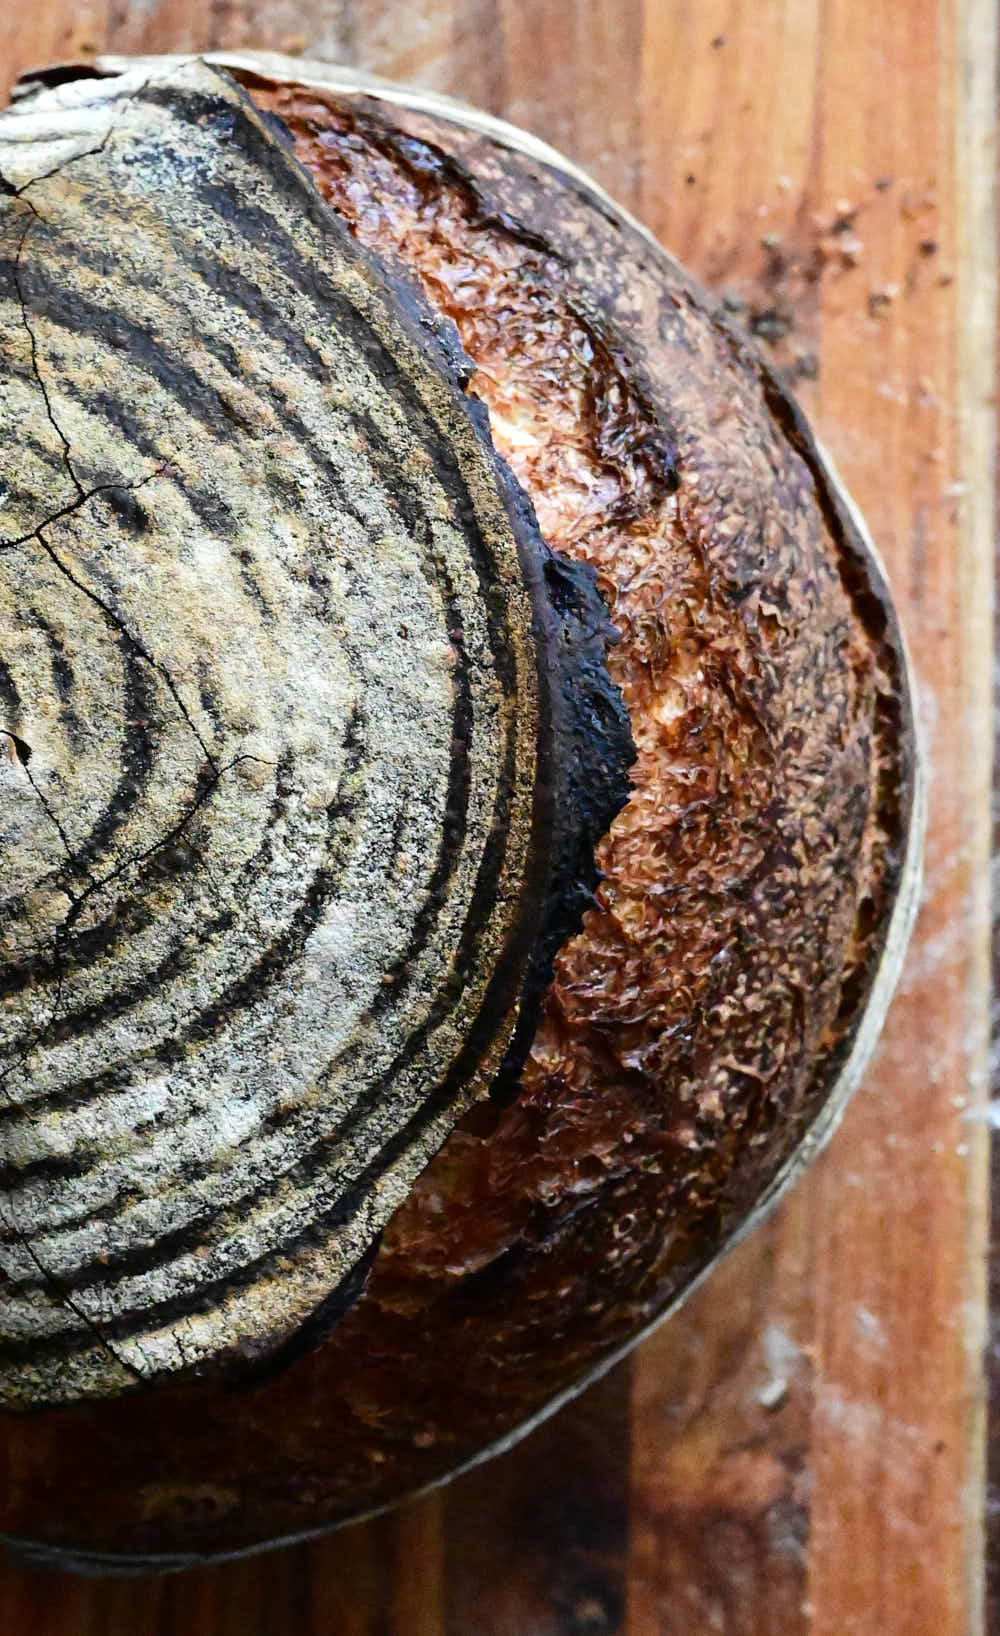 Dark crackly crust of sourdough bread.